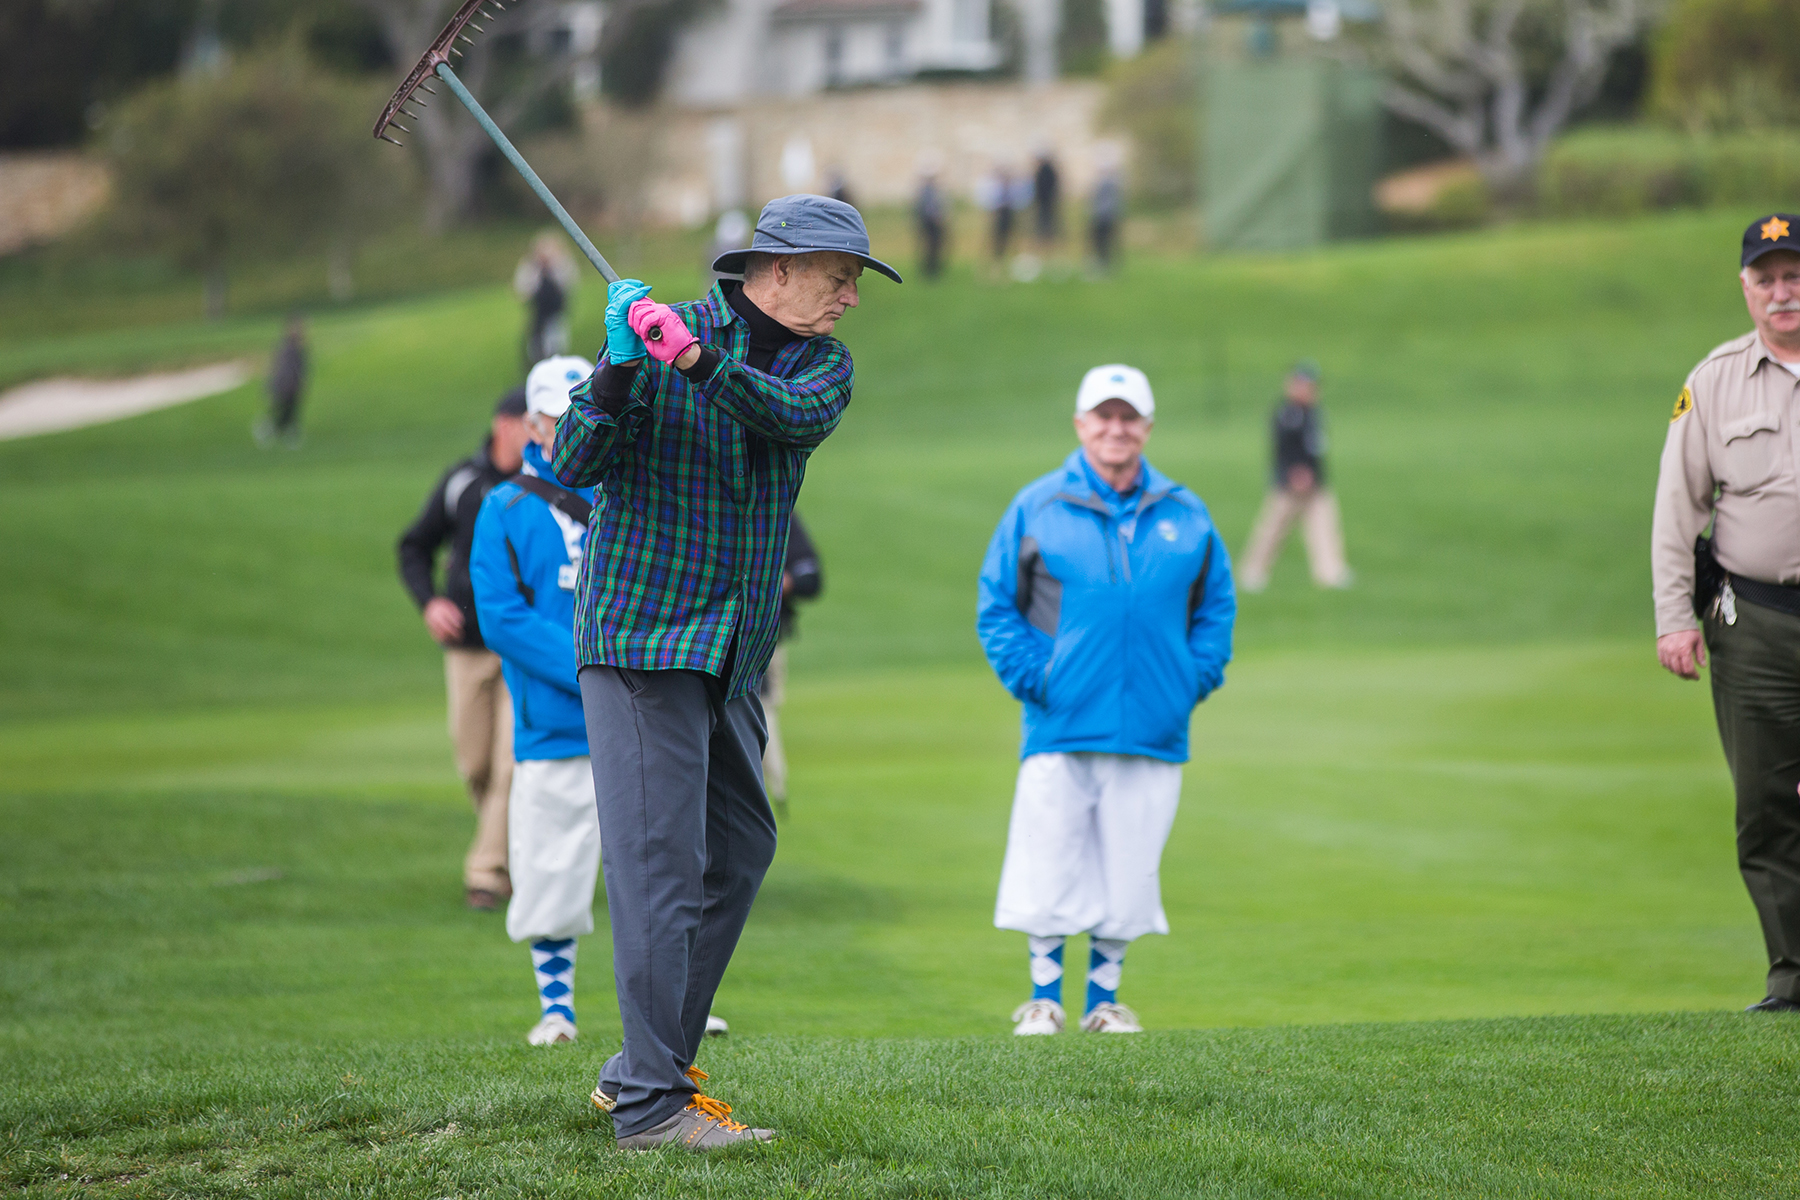 Your Preview for the 2018 AT&T Pebble Beach Pro-Am